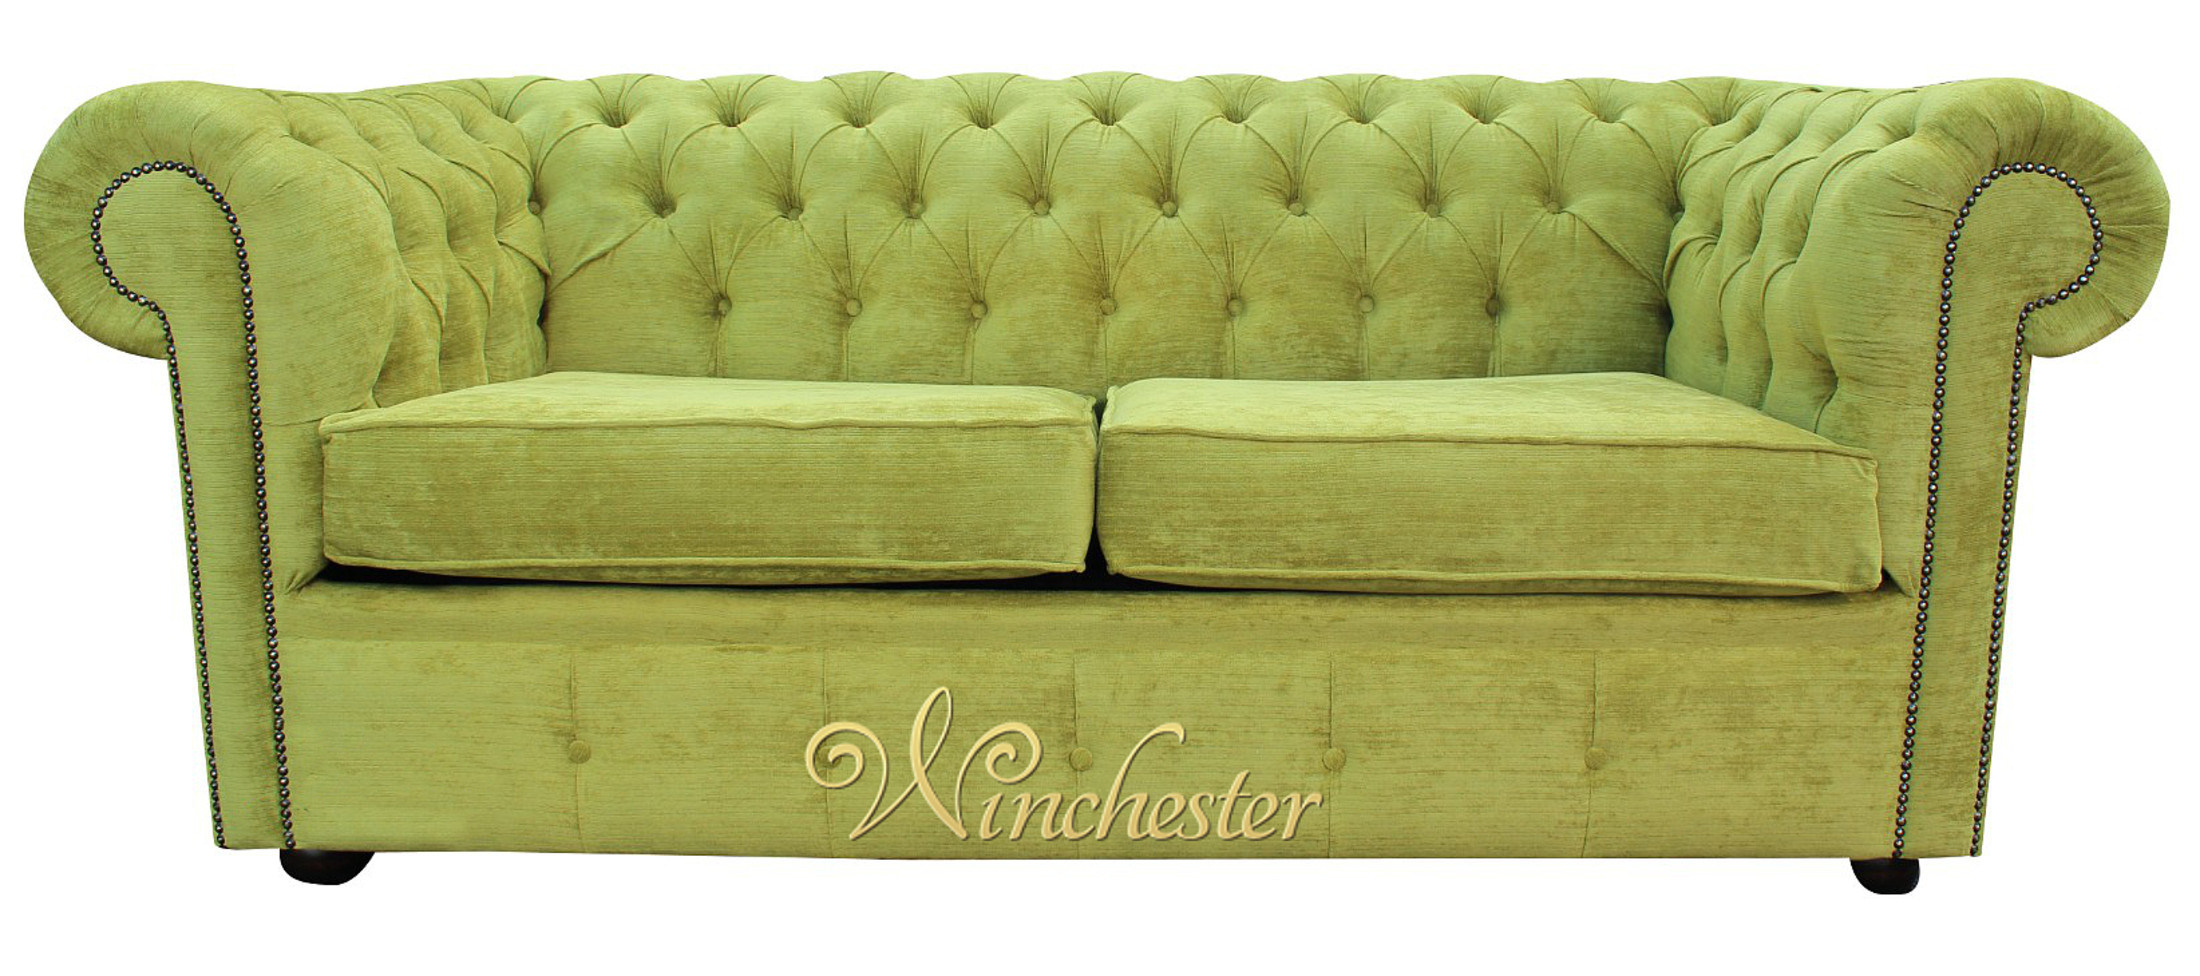 Chesterfield 2 Seater Sofa Olive Green Wc